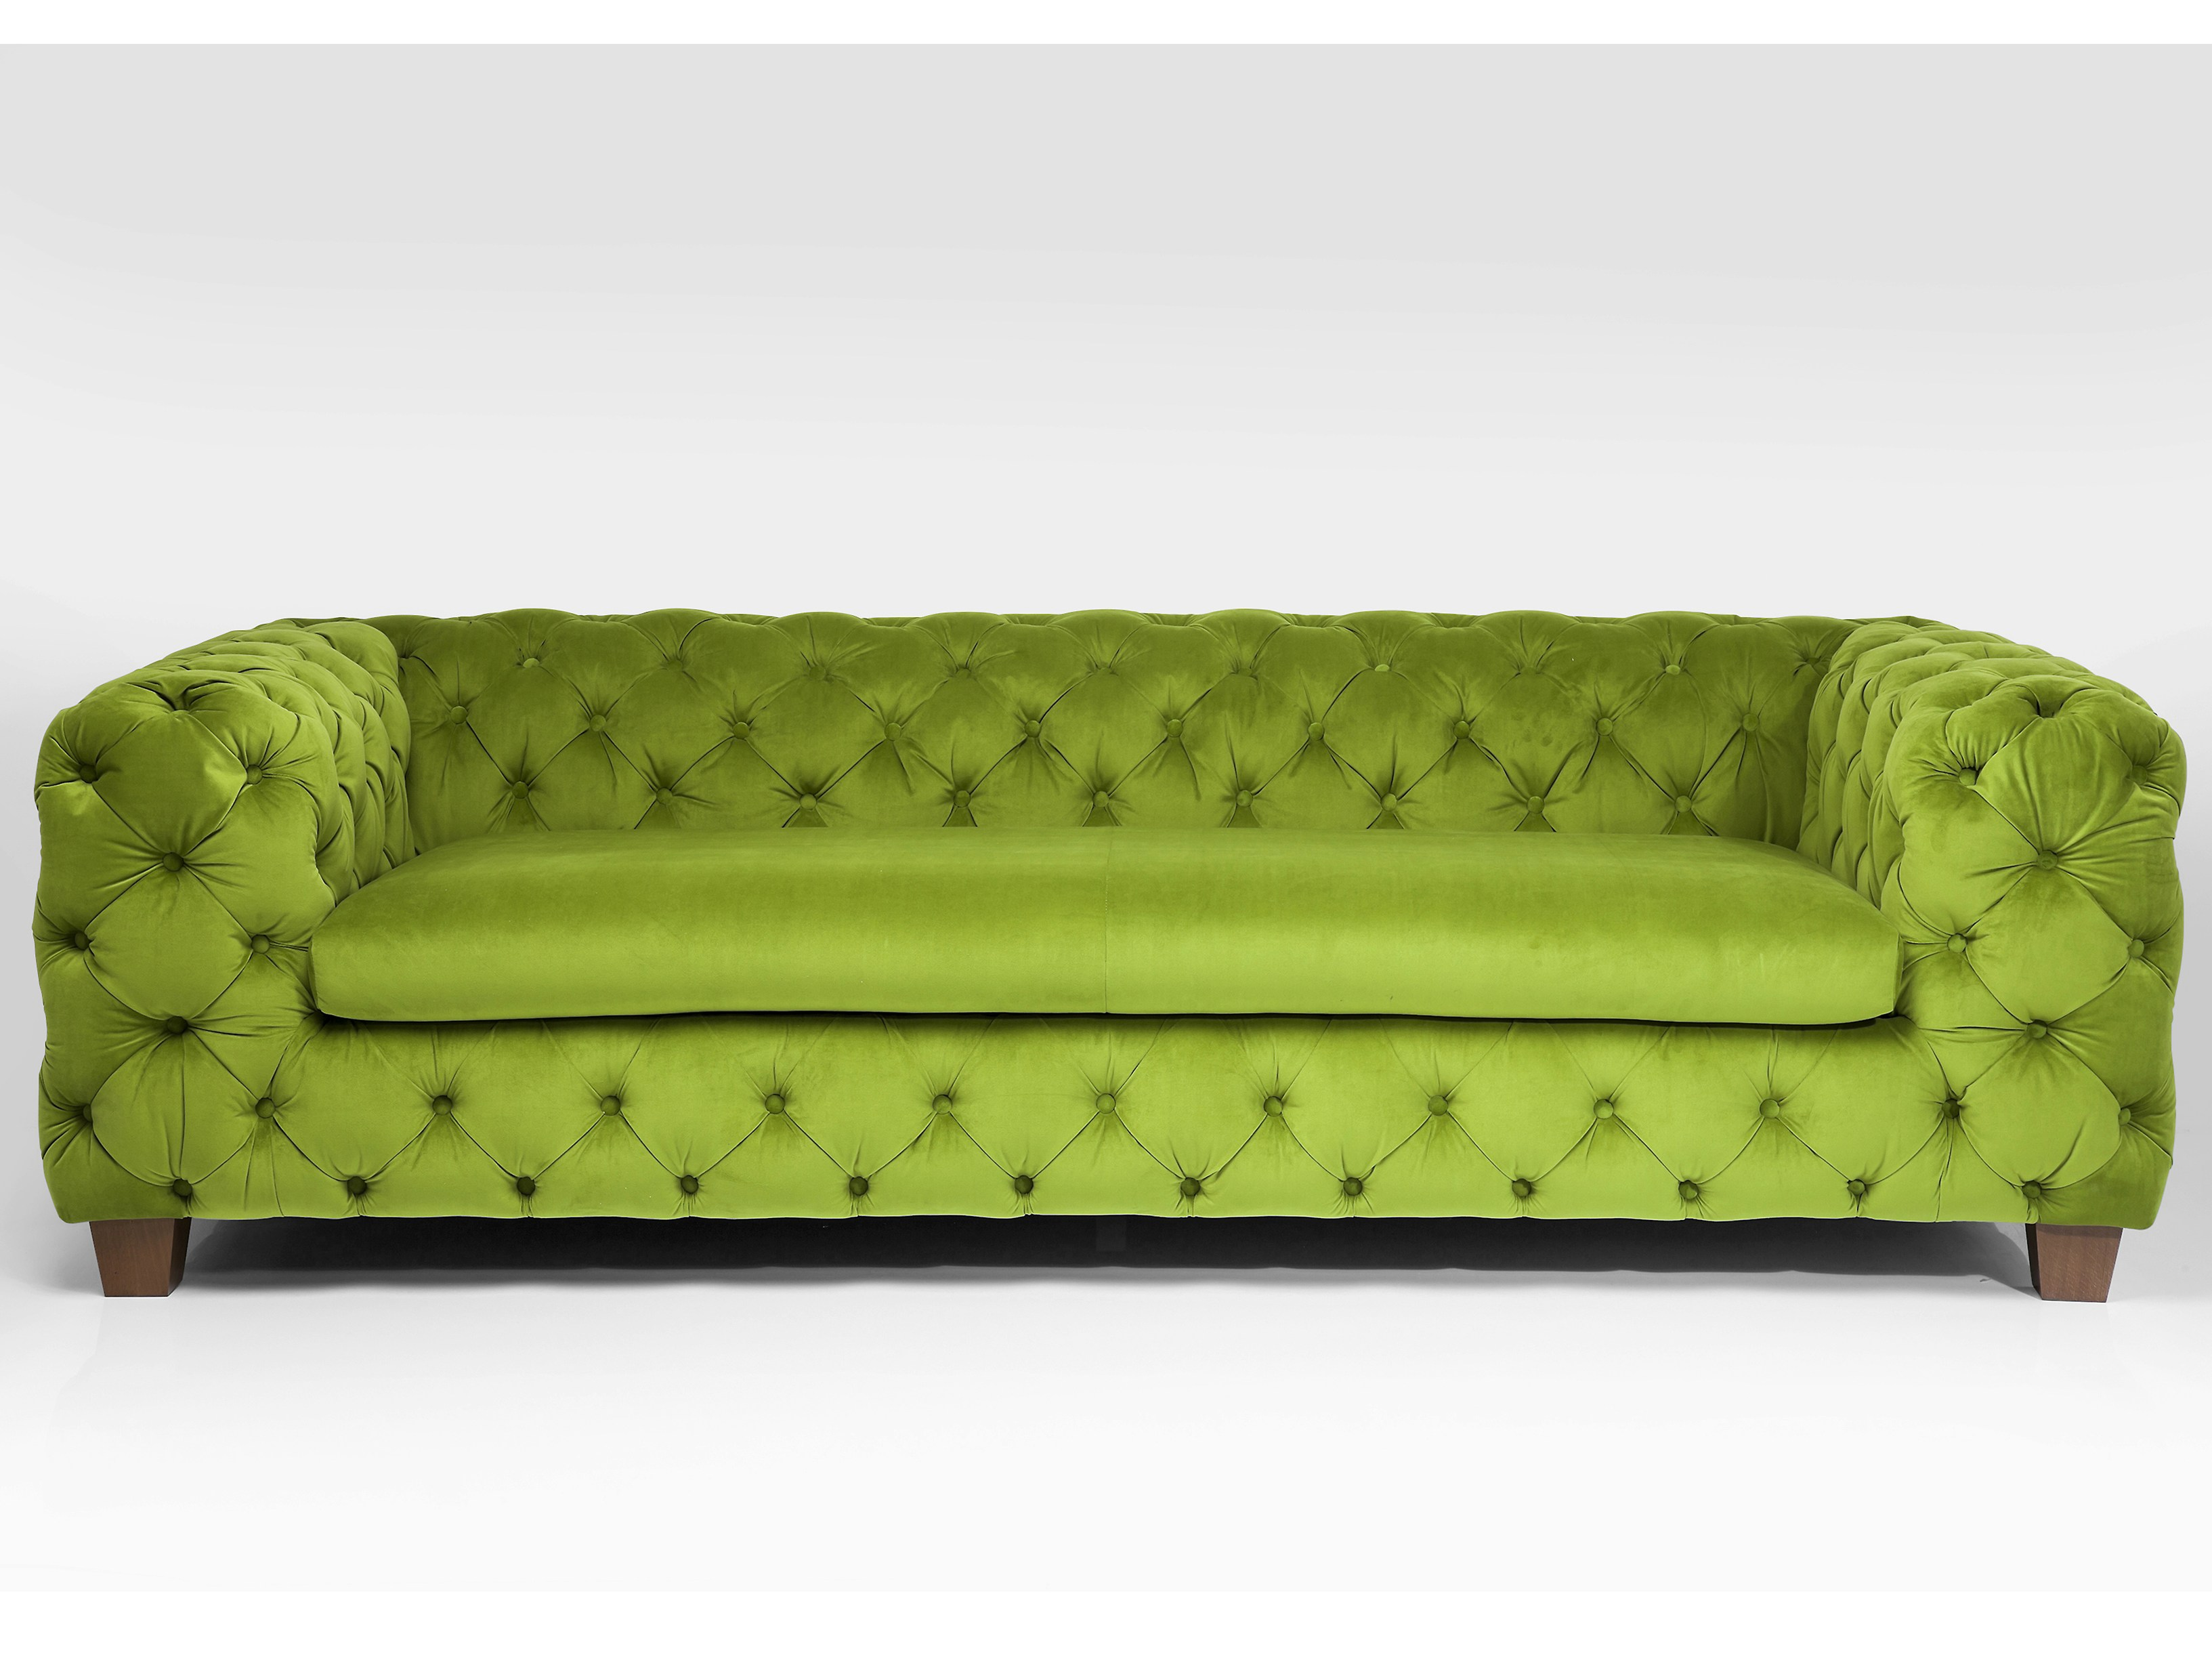 3 Seater Tufted Fabric Sofa My Desire Green By Kare Design